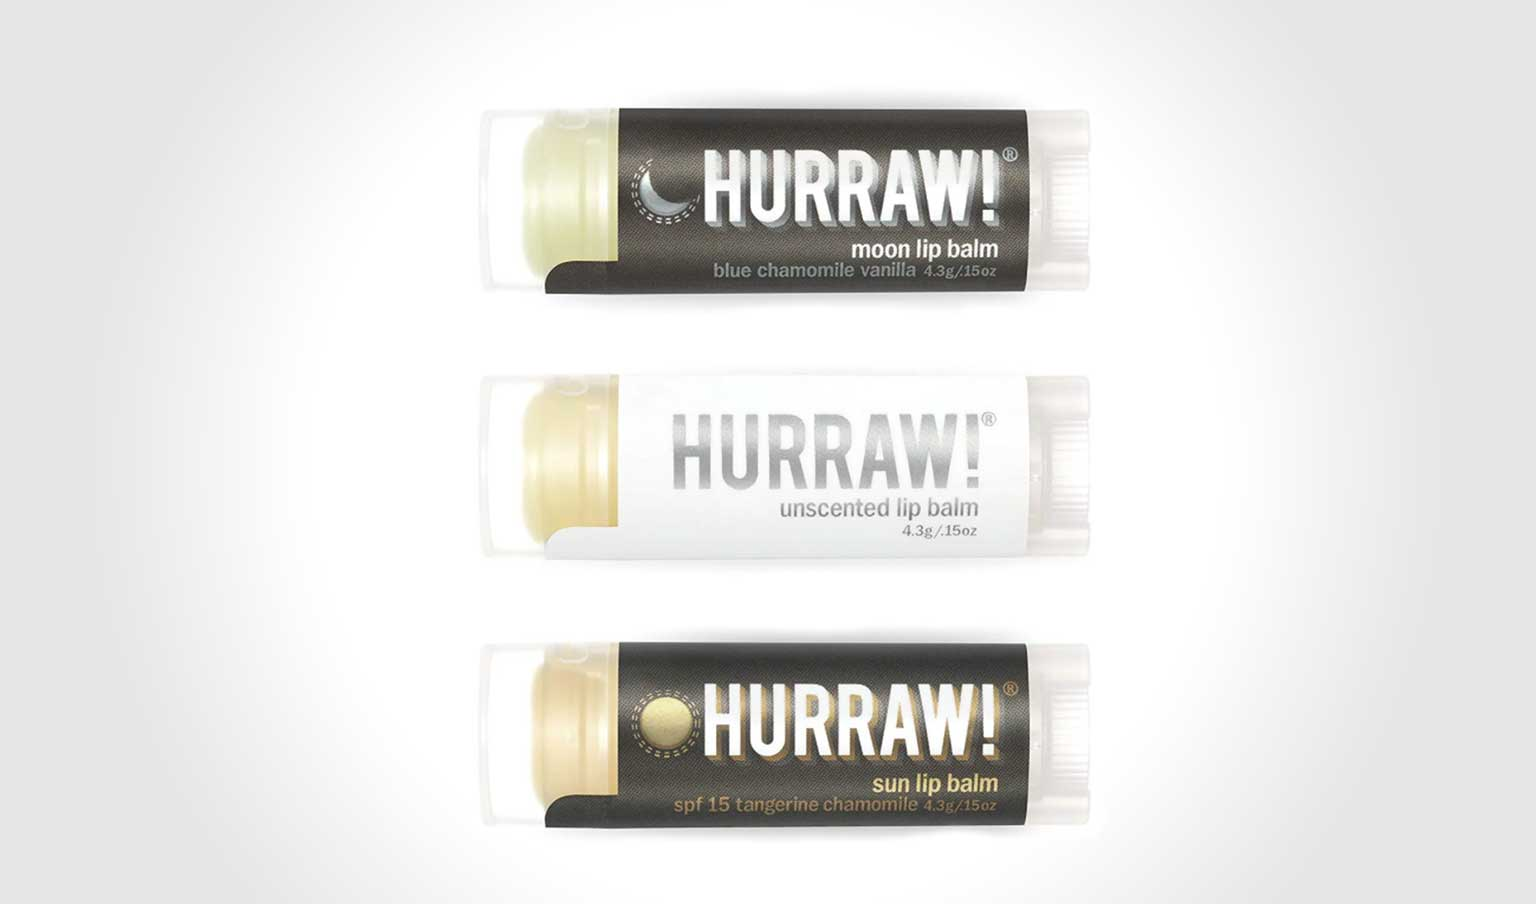 3 varieties of Hurraw! lip balm on light gradient background